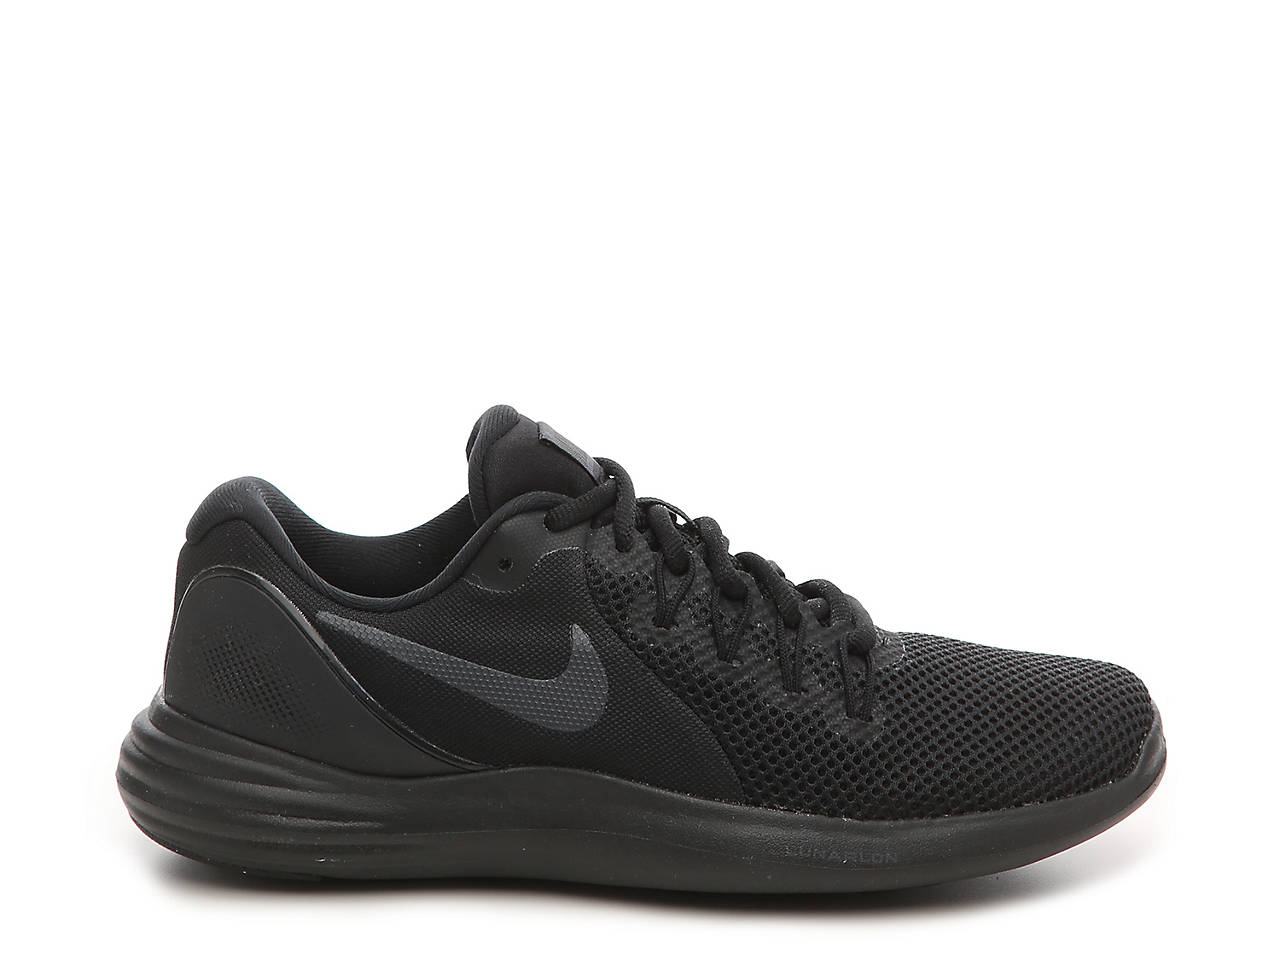 Nike Lunar Apparent Lightweight Running Shoe - Women s Women s Shoes ... 9e90b6cca